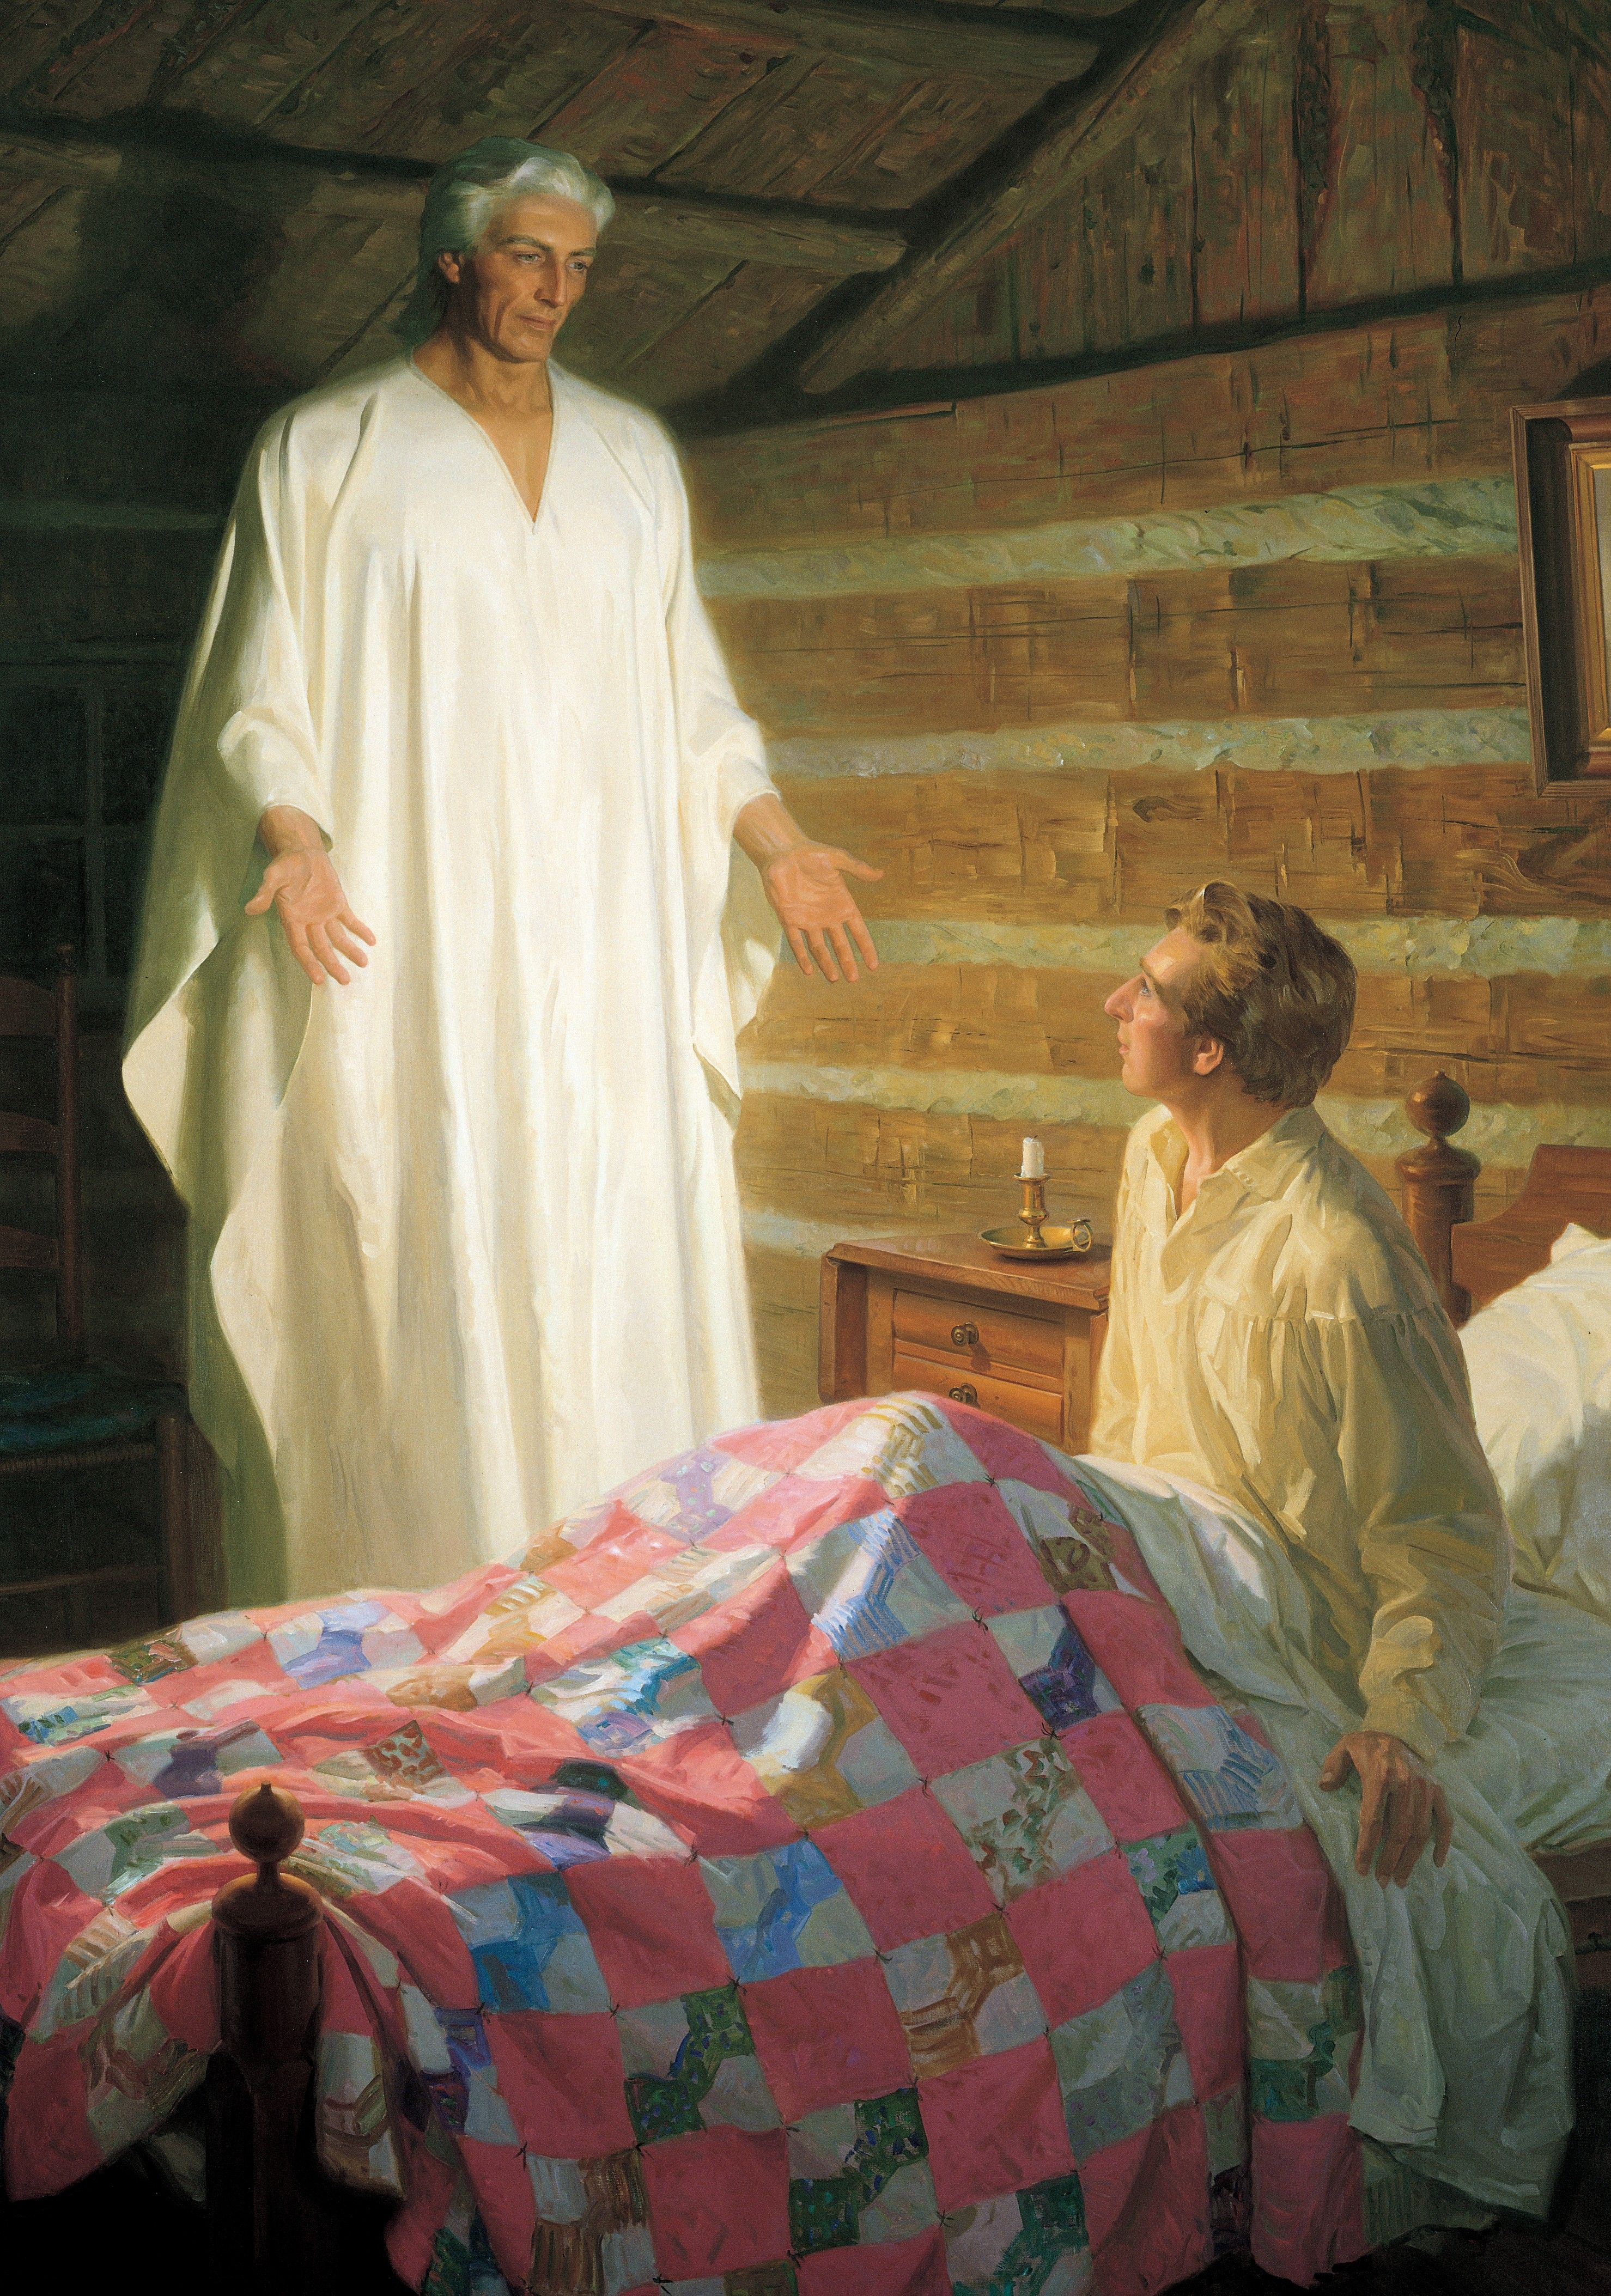 Moroni Appears to Joseph Smith in His Room (The Angel Moroni Appears to Joseph Smith), by Tom Lovell (62492); GAK 404; GAB 91; Primary manual 3-32; Primary manual 4-55; Primary manual 5-08; Joseph Smith—History 1:27–47